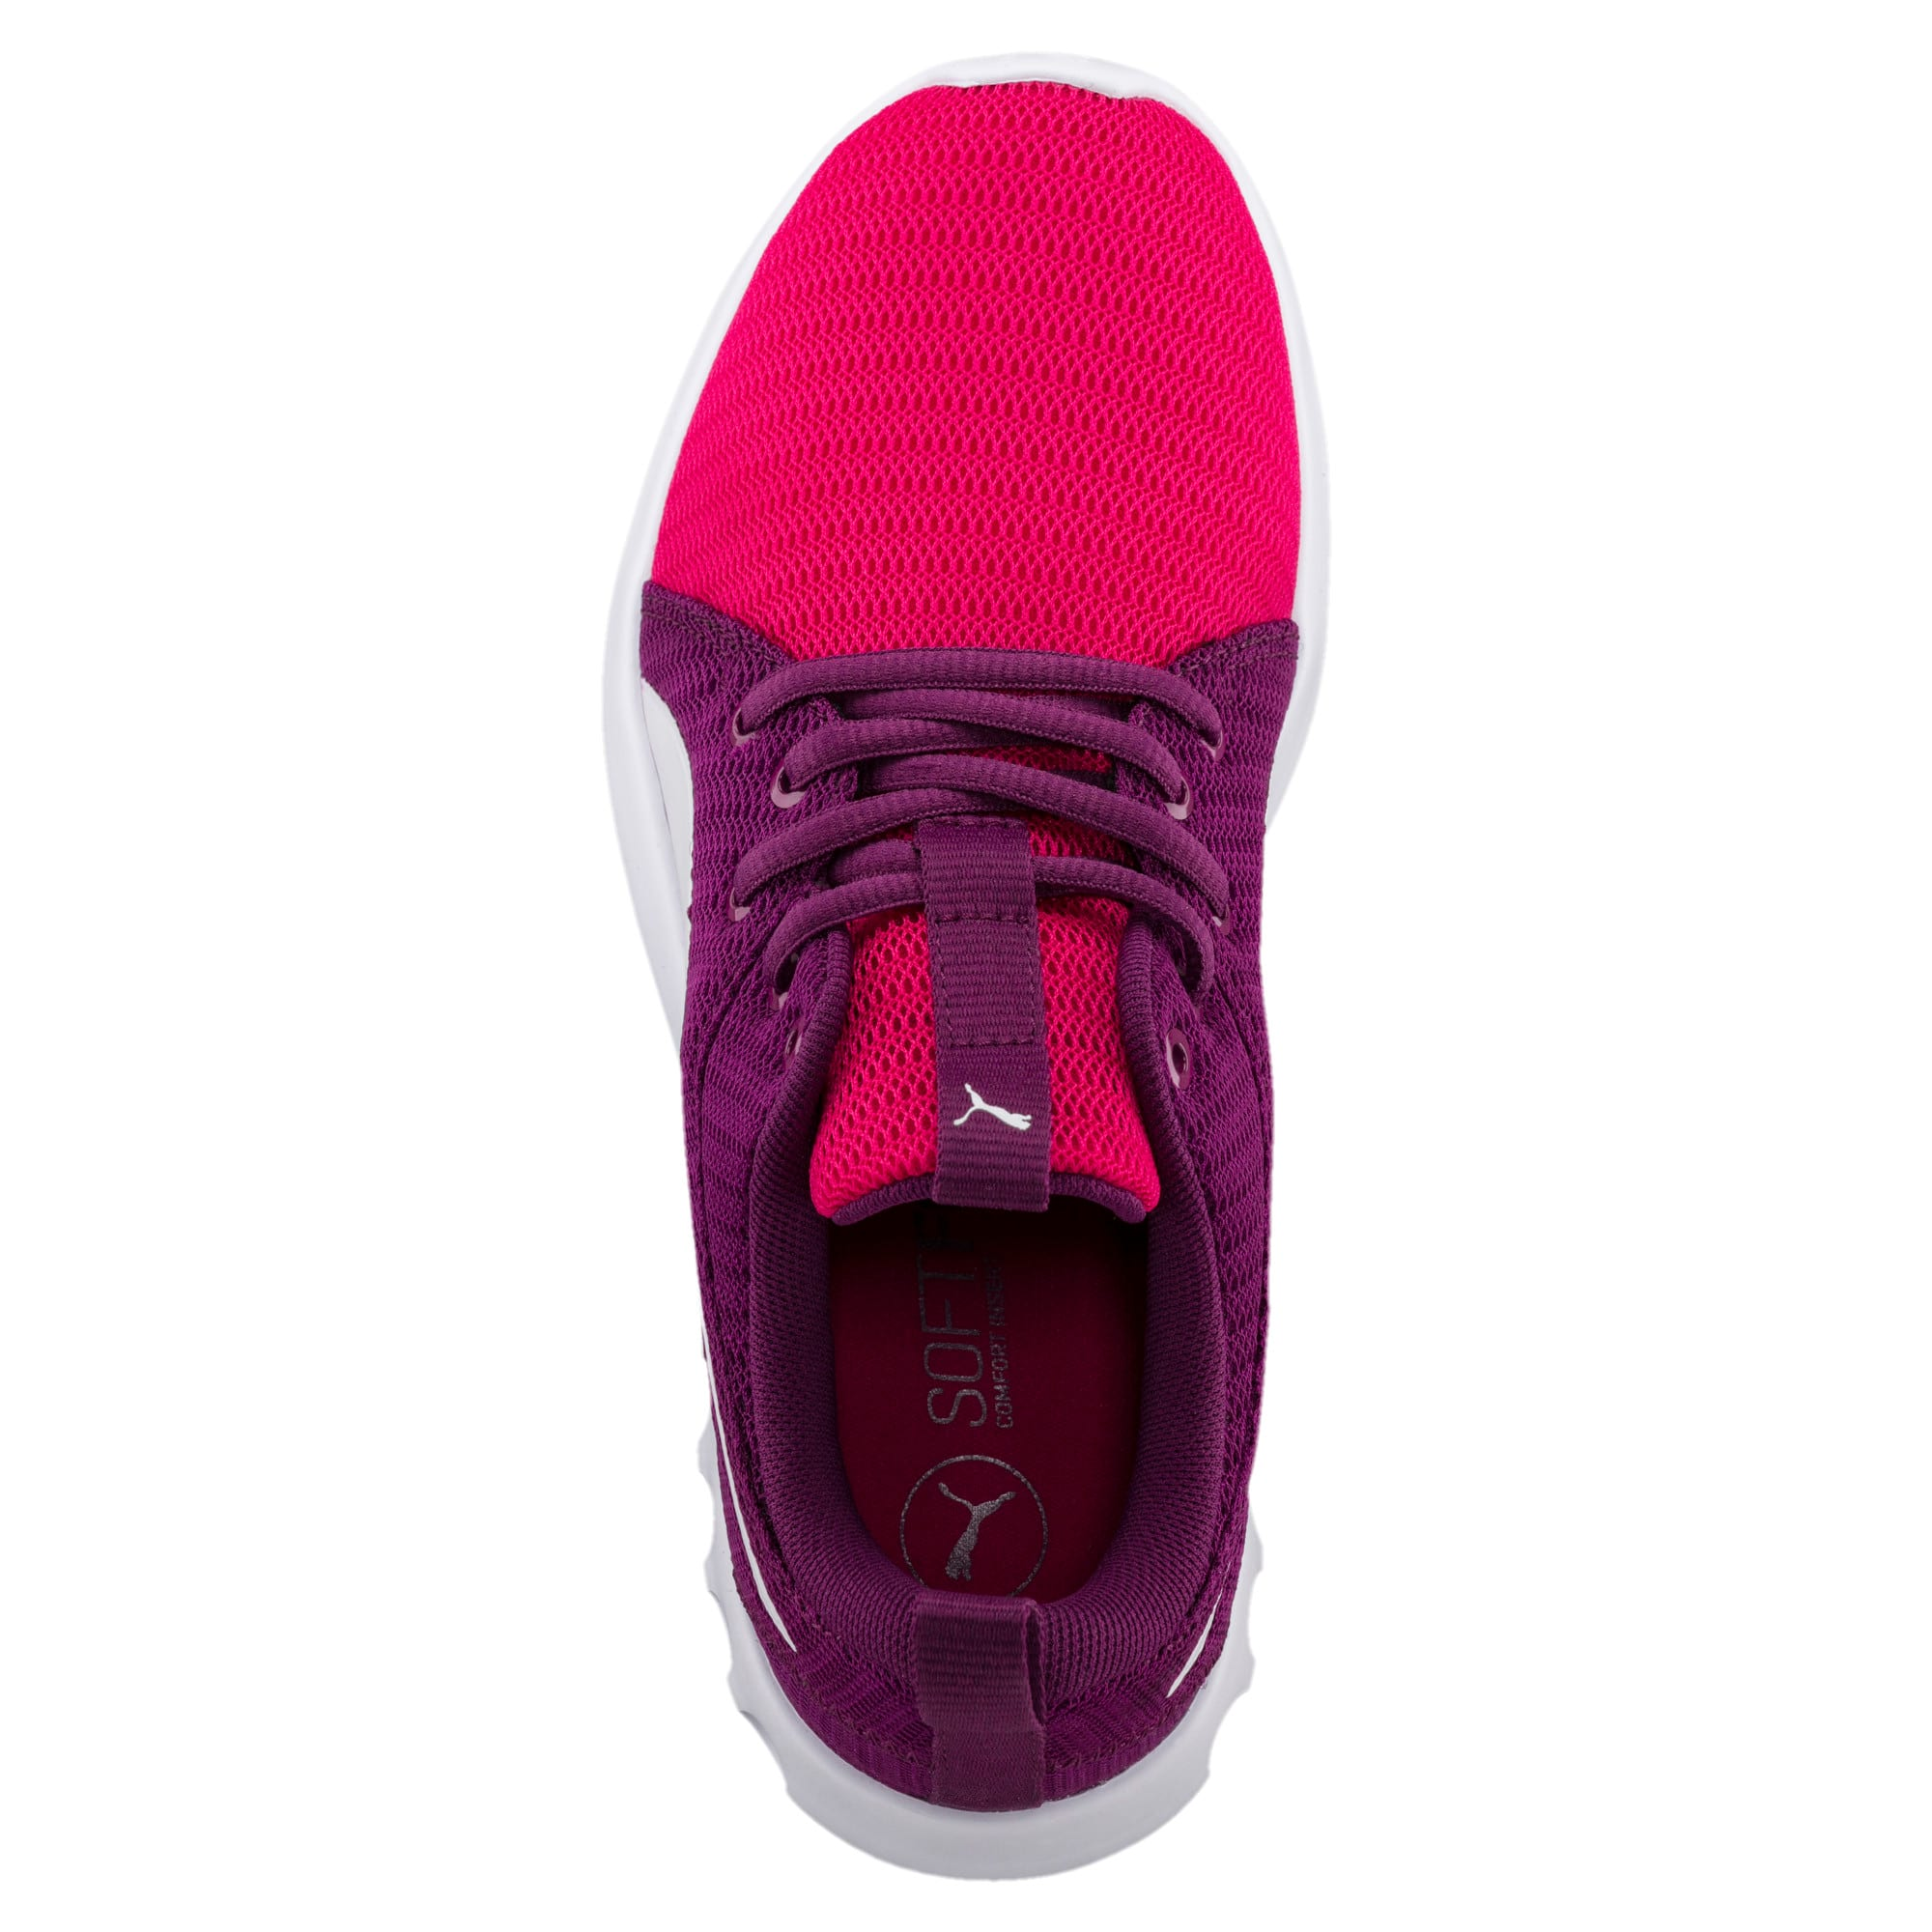 Thumbnail 3 of Carson 2 Youth Trainers, Love Potion-Puma White, medium-IND